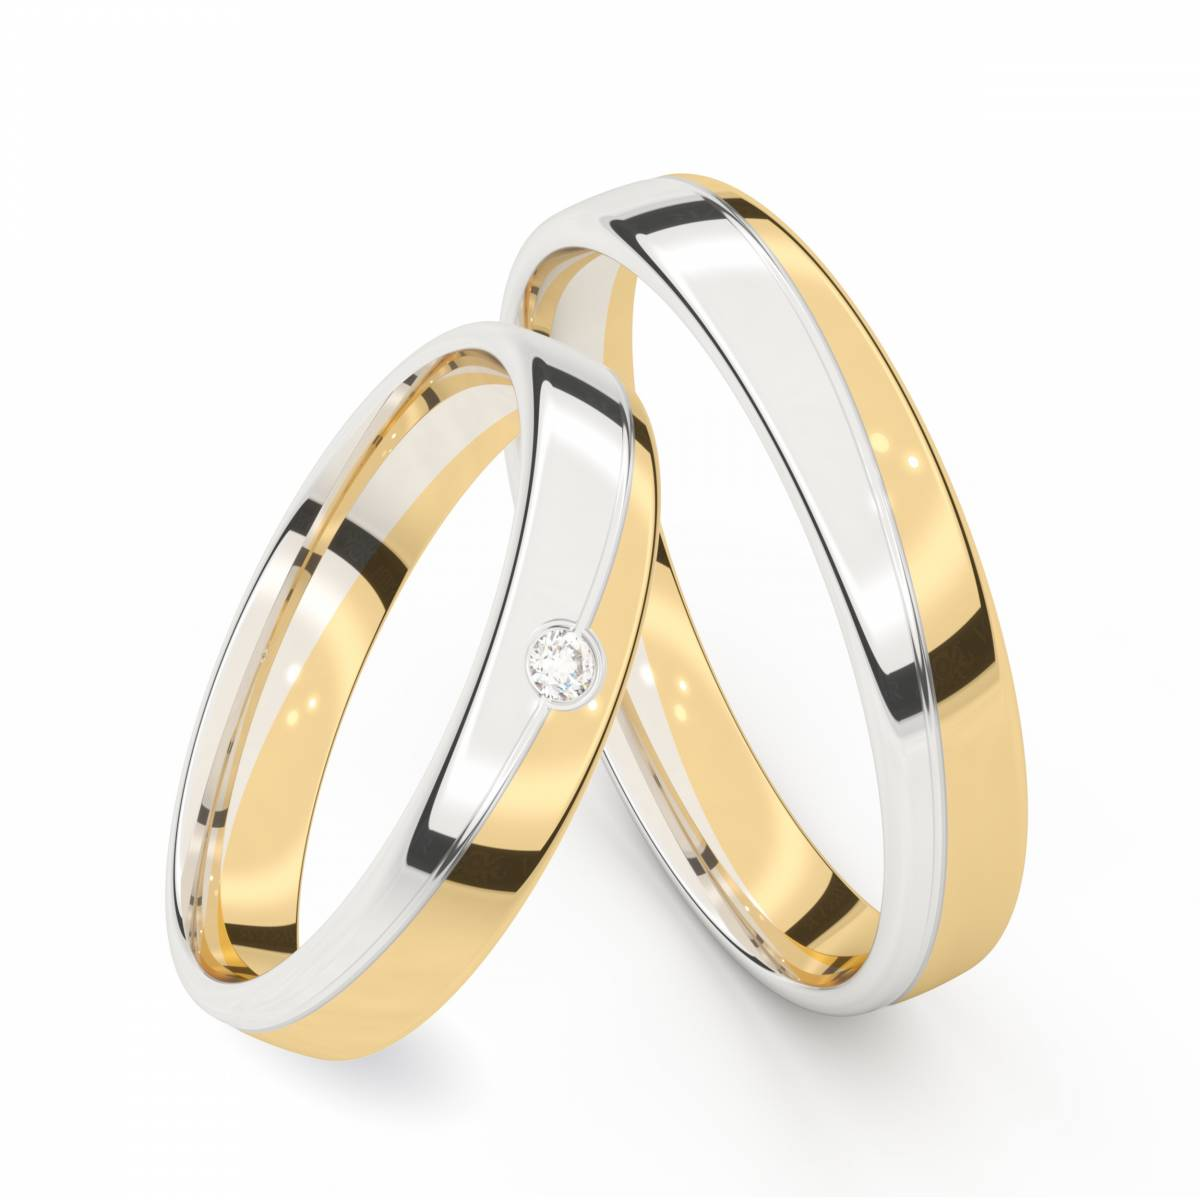 Juwelier Jan Maes - Trouwringen - Verlovingsringen - Juwelen - House of Weddings - 2